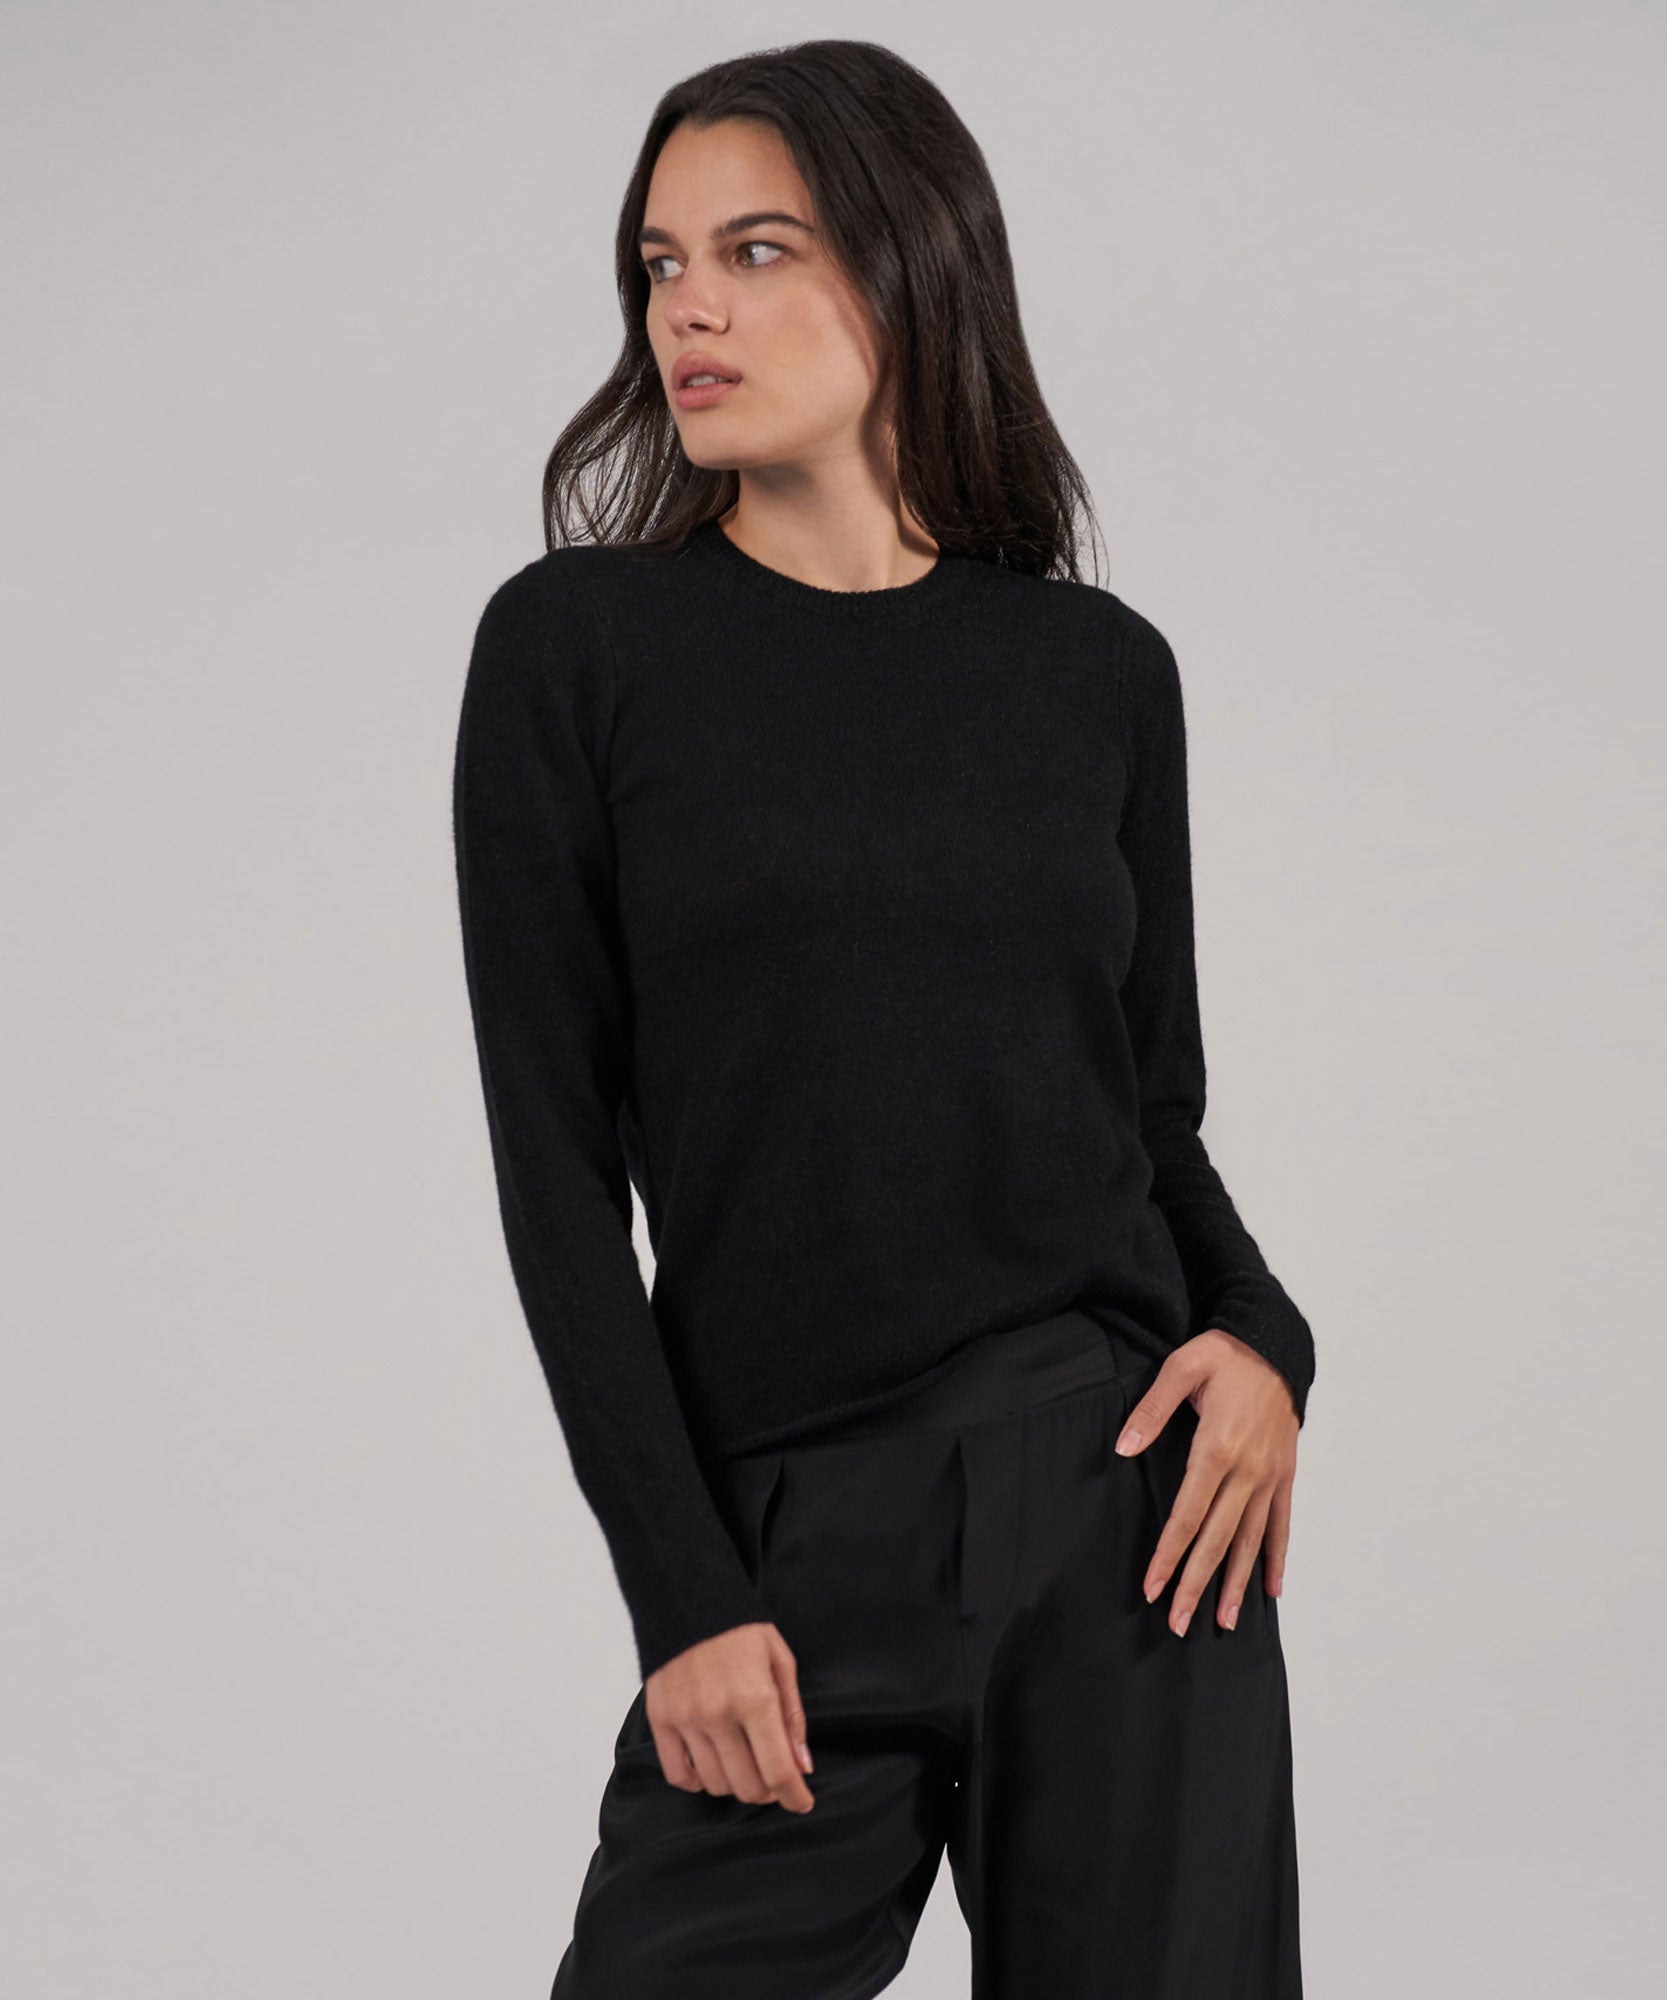 Black Cashmere Crew Neck Sweater - Women's Luxe Sweater by ATM Anthony Thomas Melillo